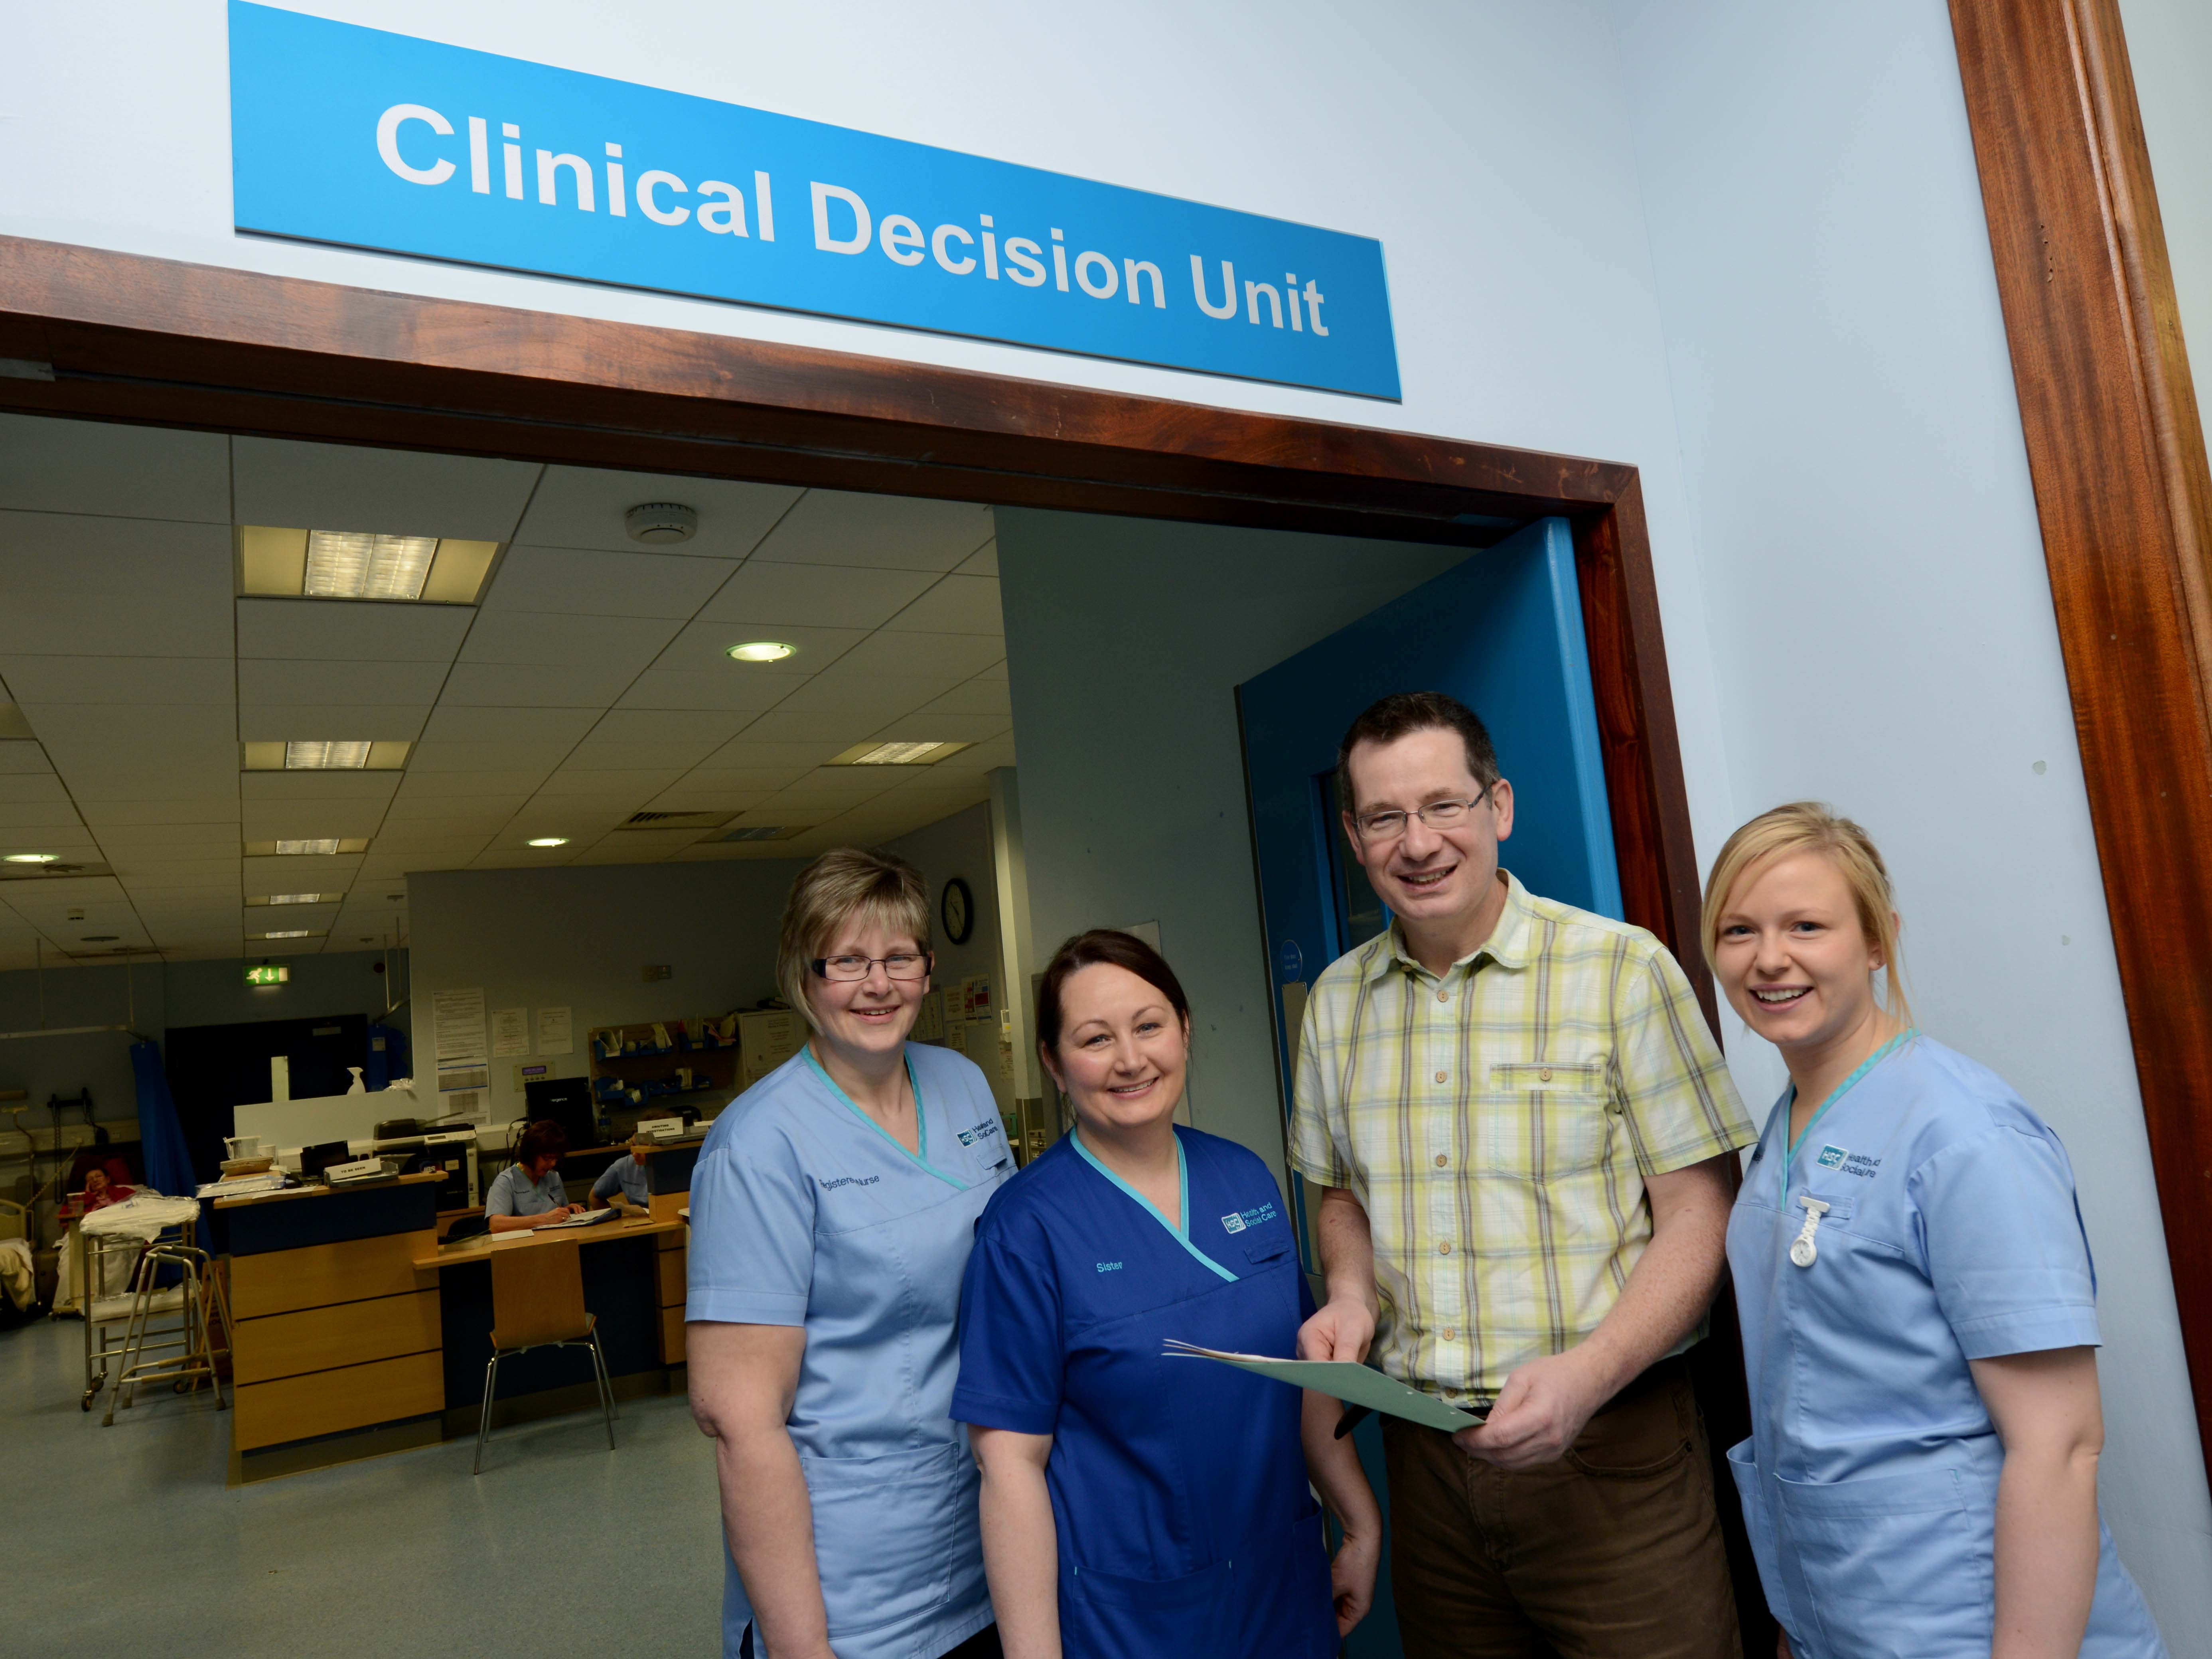 Mr Seamus O'Reilly, Associate Medical Director for Emergency Medicine, Southern Health and Social Care Trust pictured with some colleagues in the Emergency Department in Craigavon Area Hospital